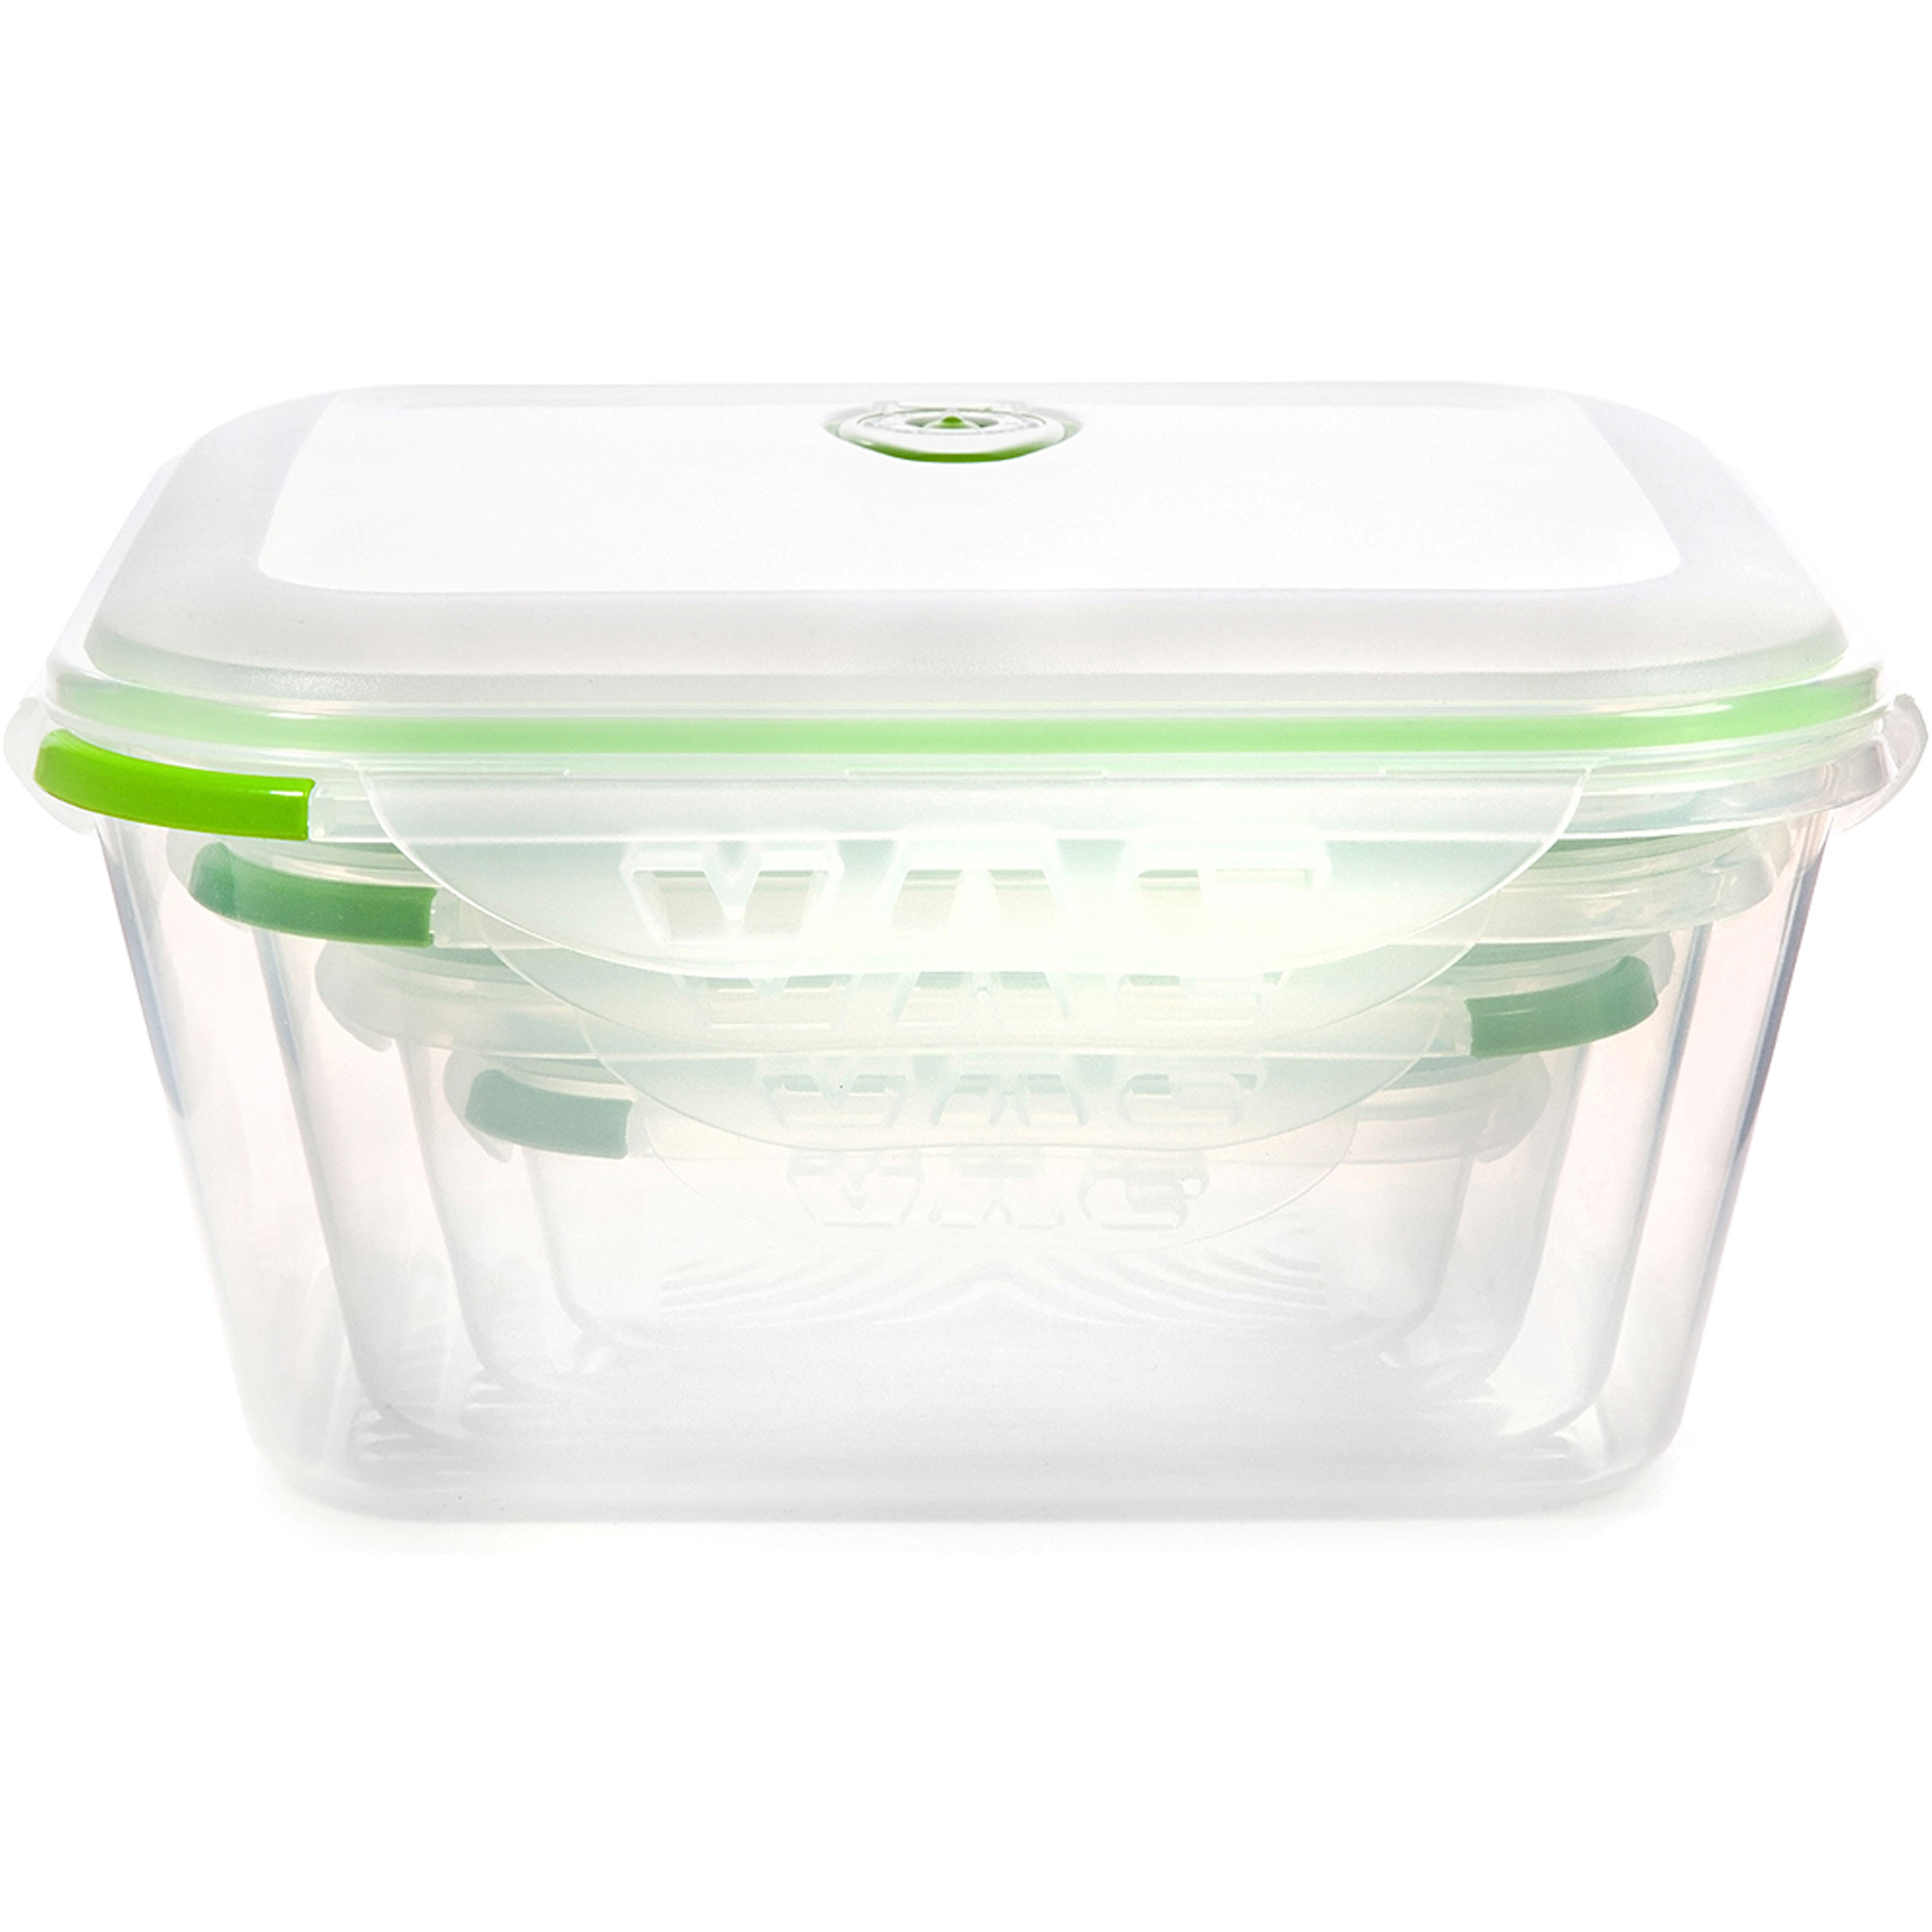 Ozeri Instavac 8 Piece Green Earth Food Storage Container